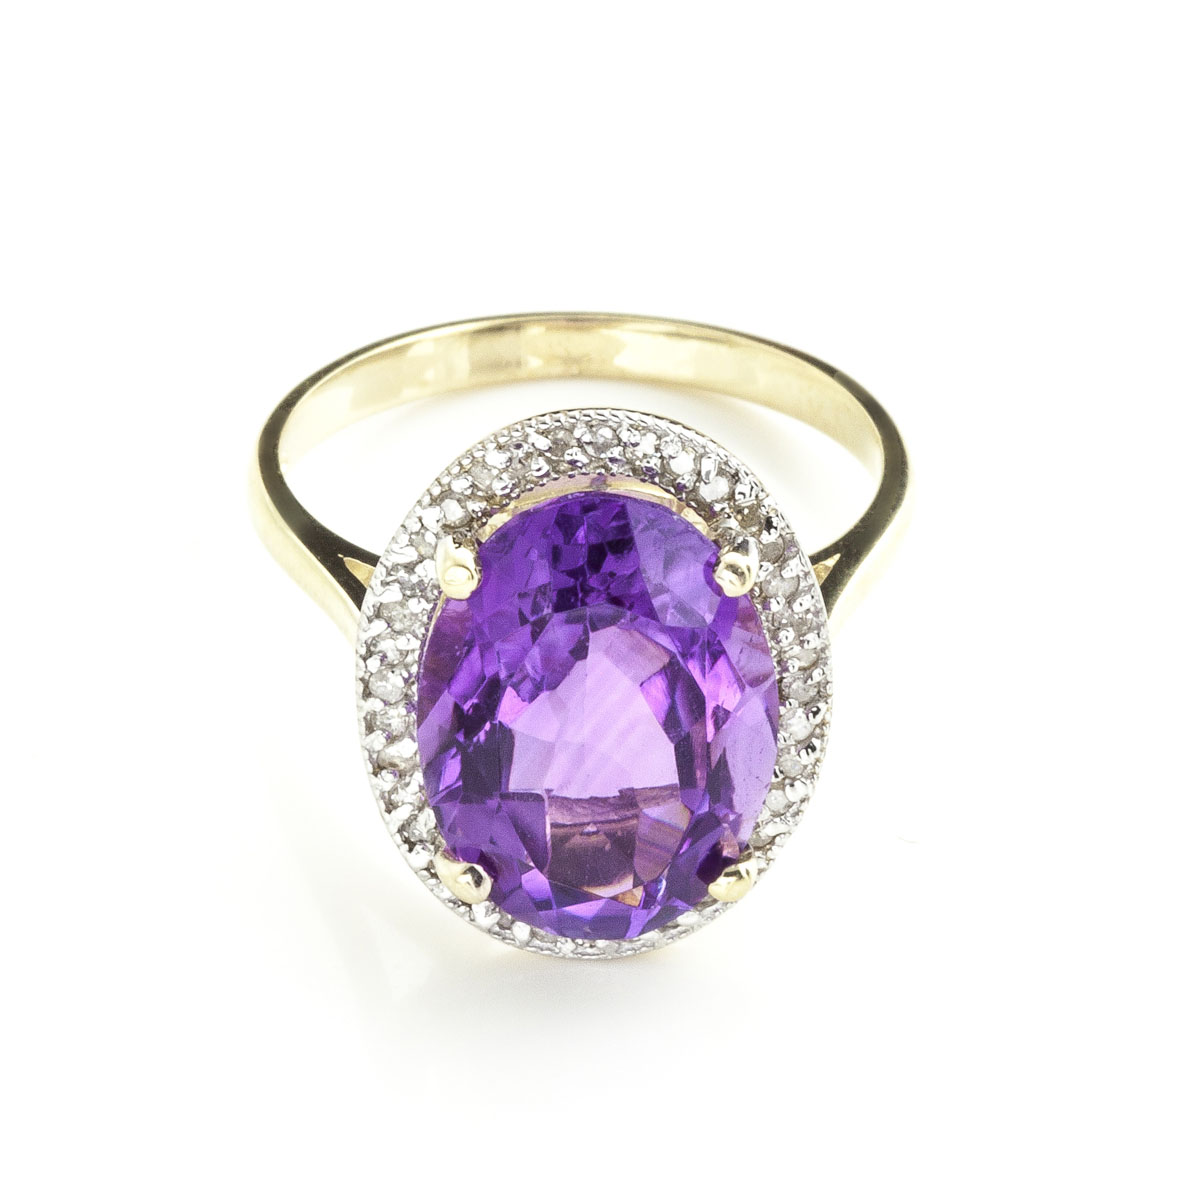 Amethyst Halo Ring 5.28 ctw in 18ct Gold